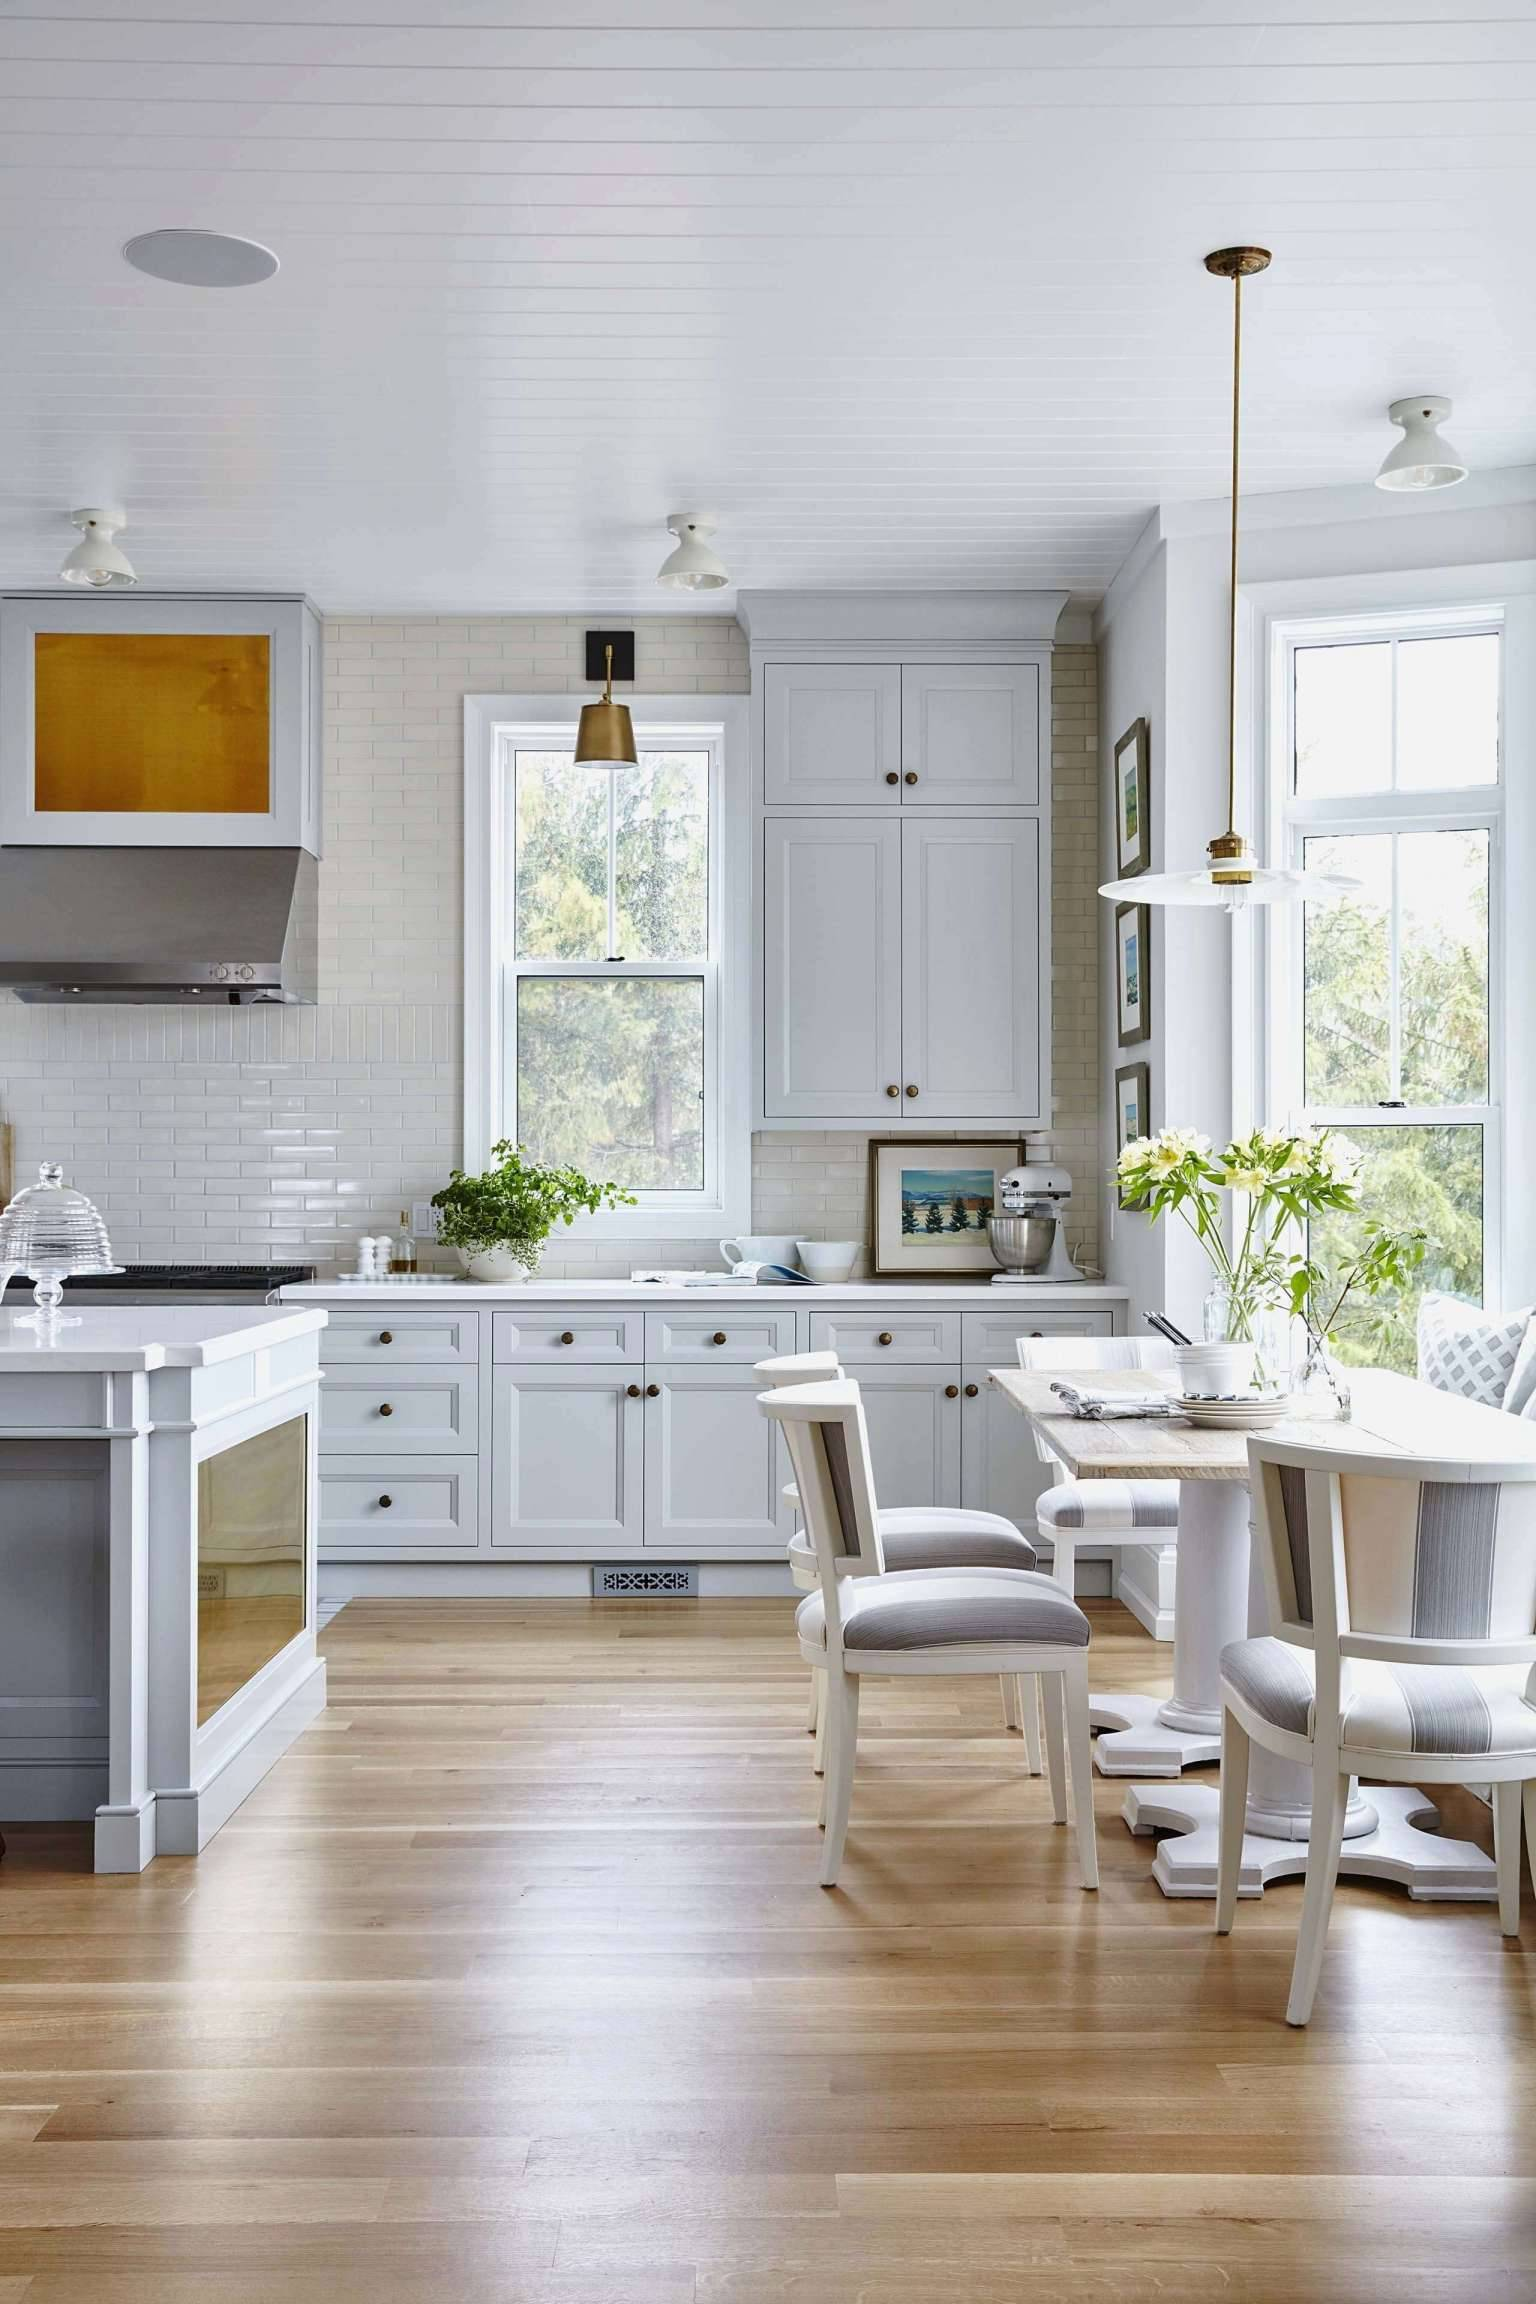 images of new homes interiors exterior colors apartment bedroom decor awesome kitchen joys kitchen joys kitchen 0d